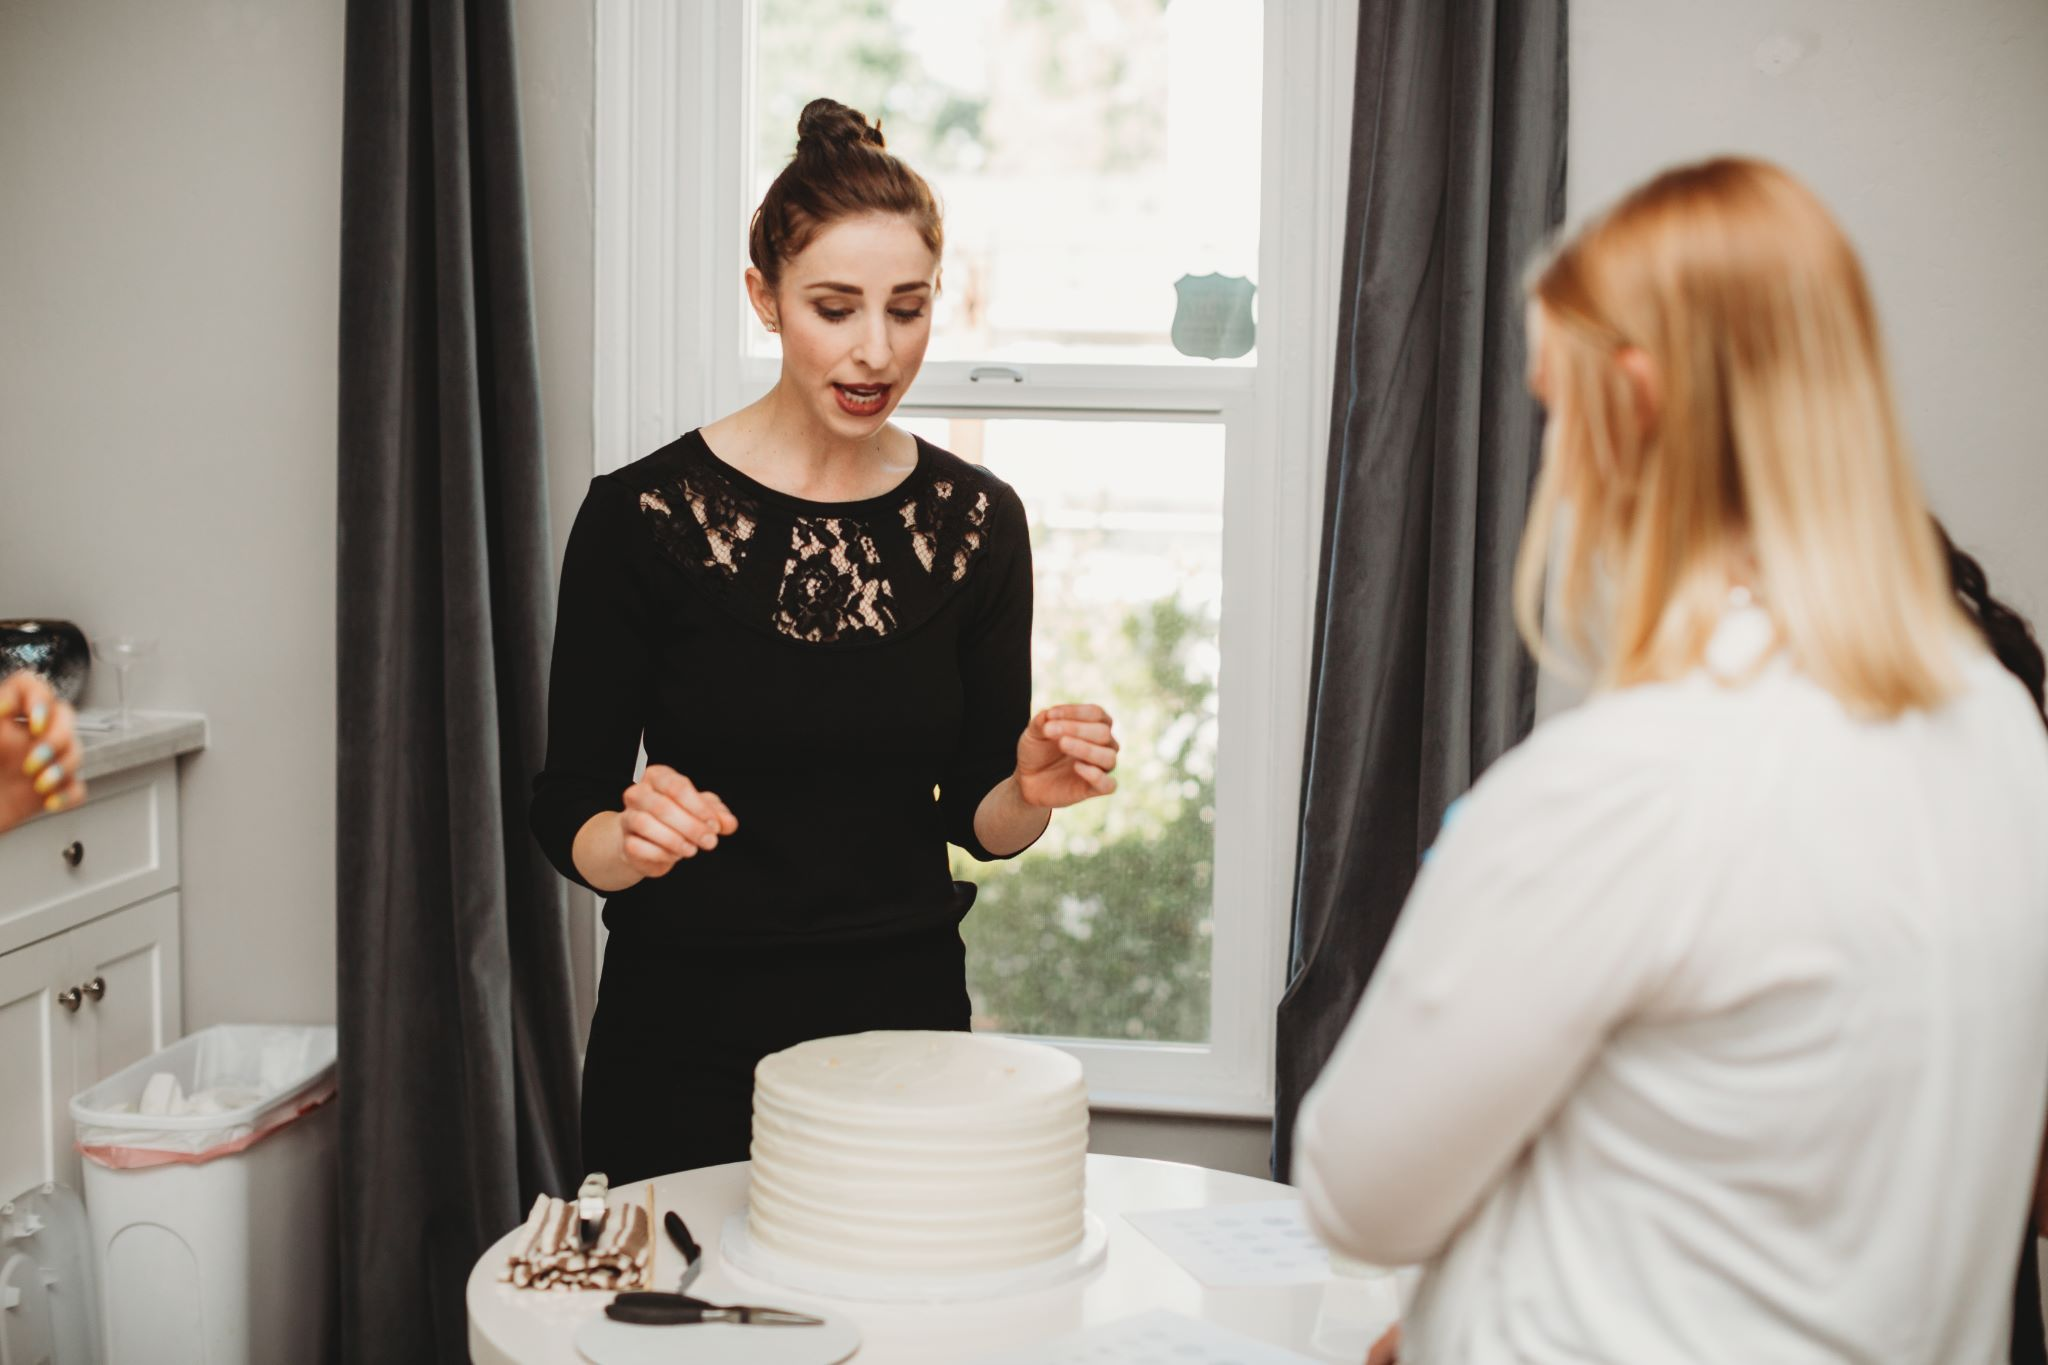 ghiladolci bakery courtney denny show us how to properly cut a wedding cake